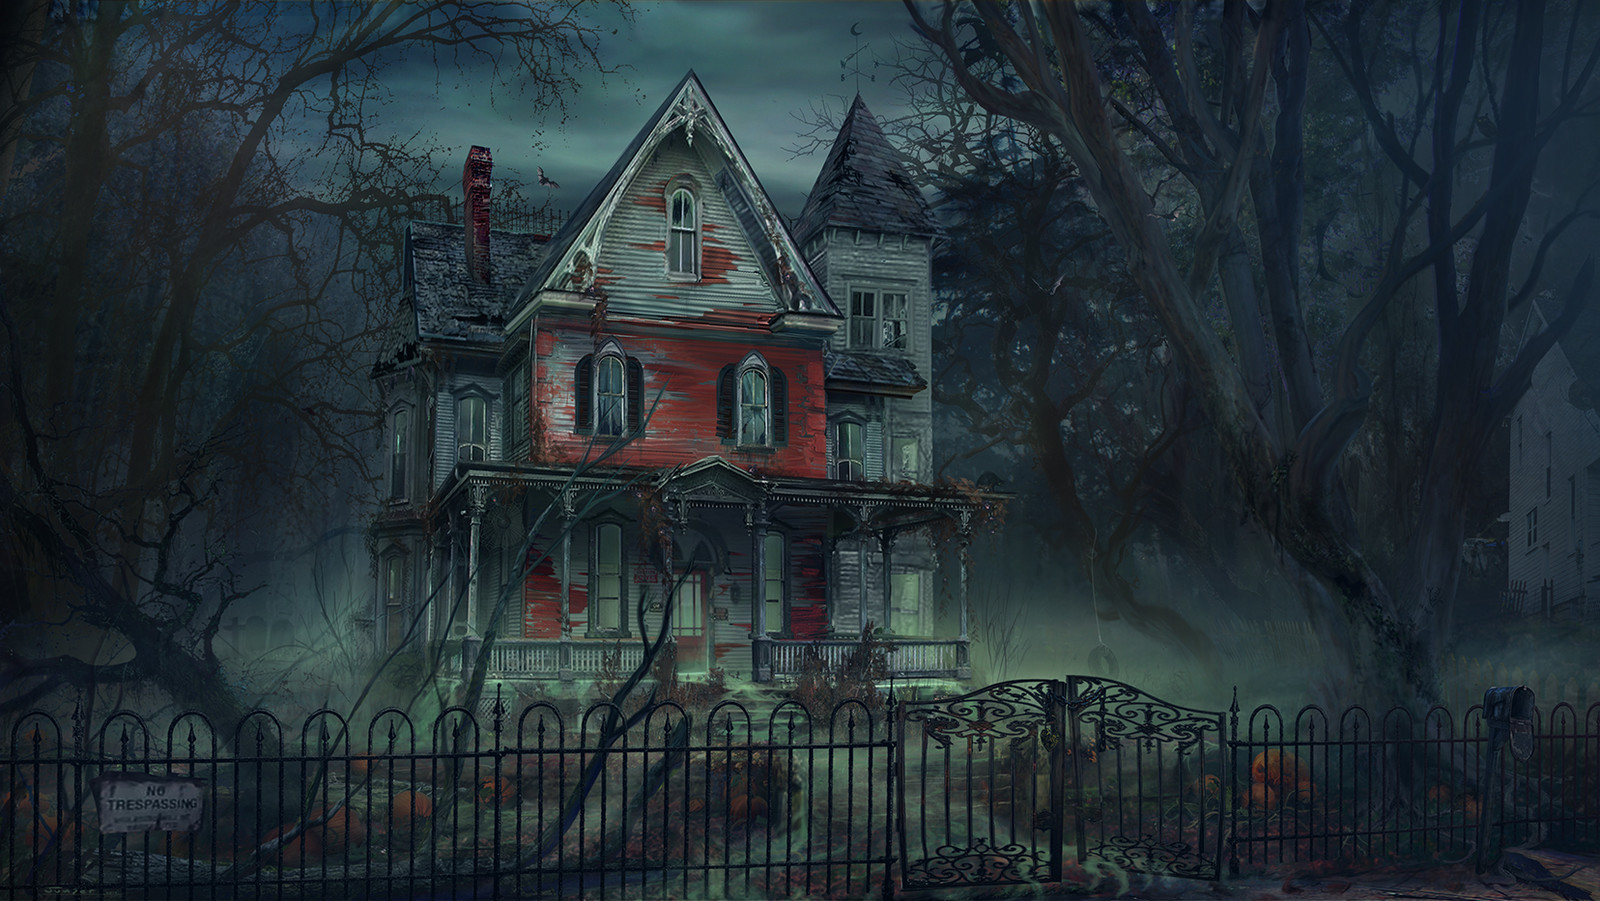 A Haunted House - Night and Day